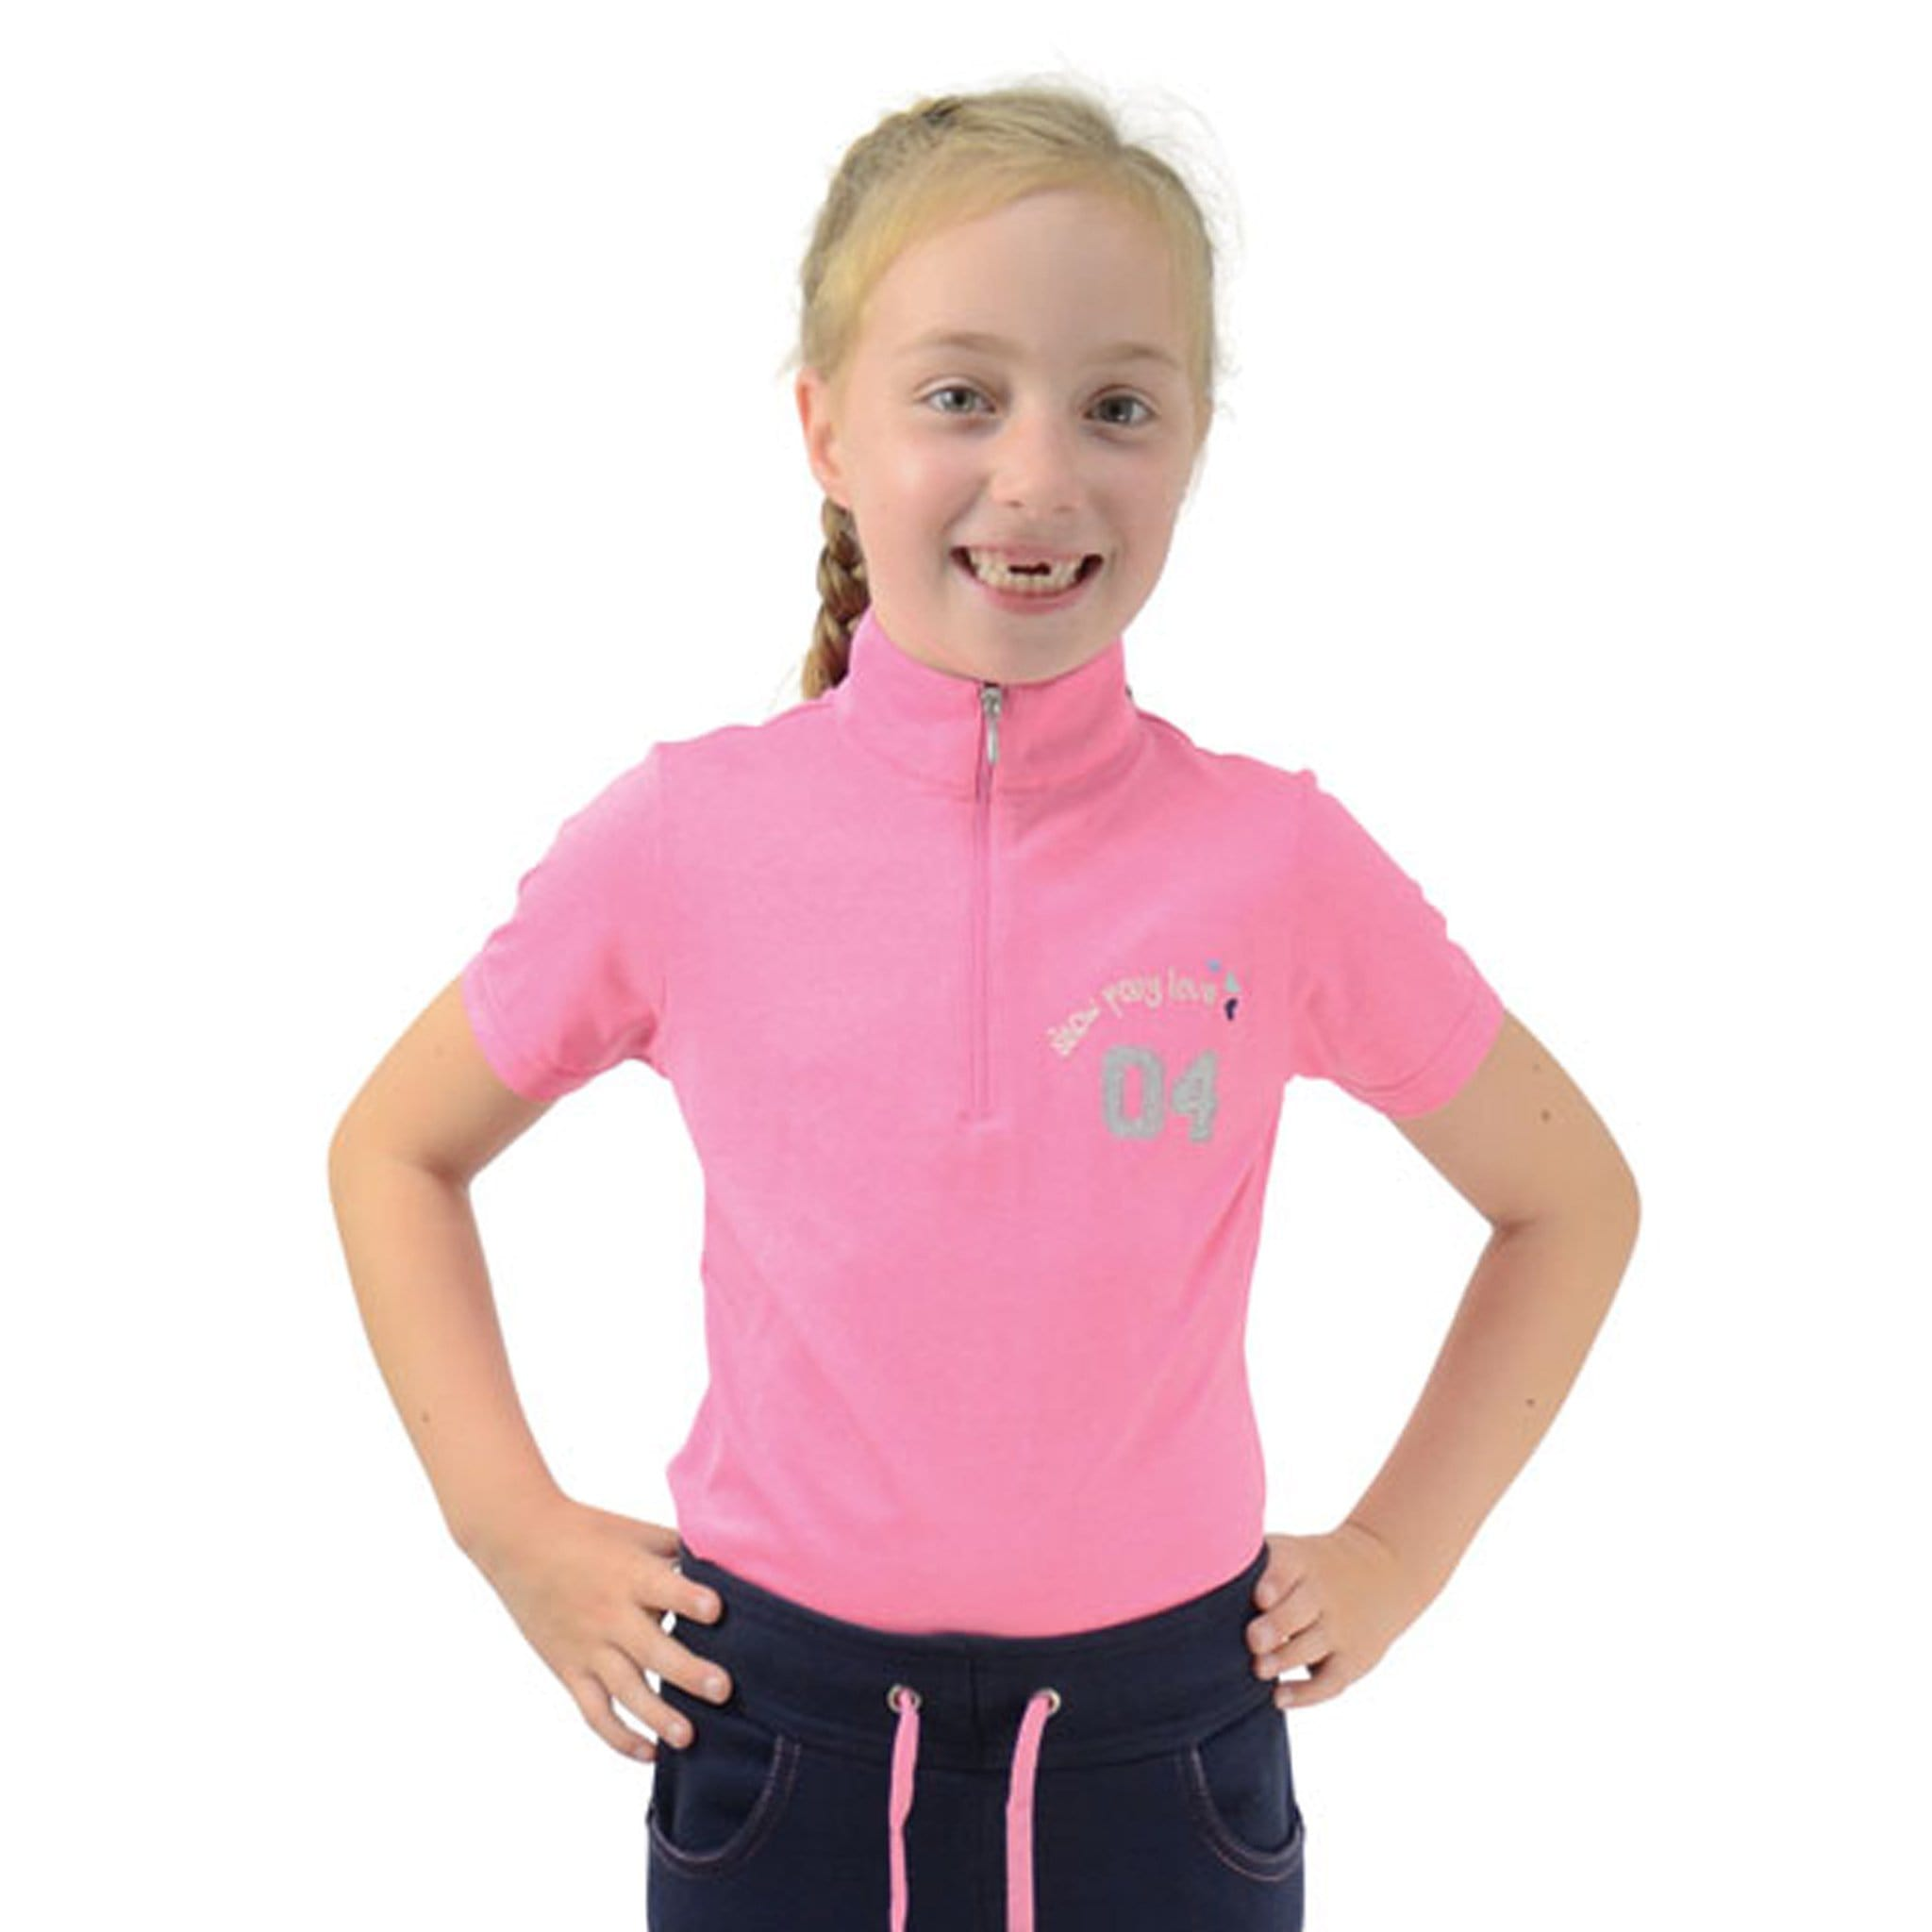 Hy Children's Little Rider Show Pony Love Short Sleeve Show Shirt 20860 Pink On Child Front